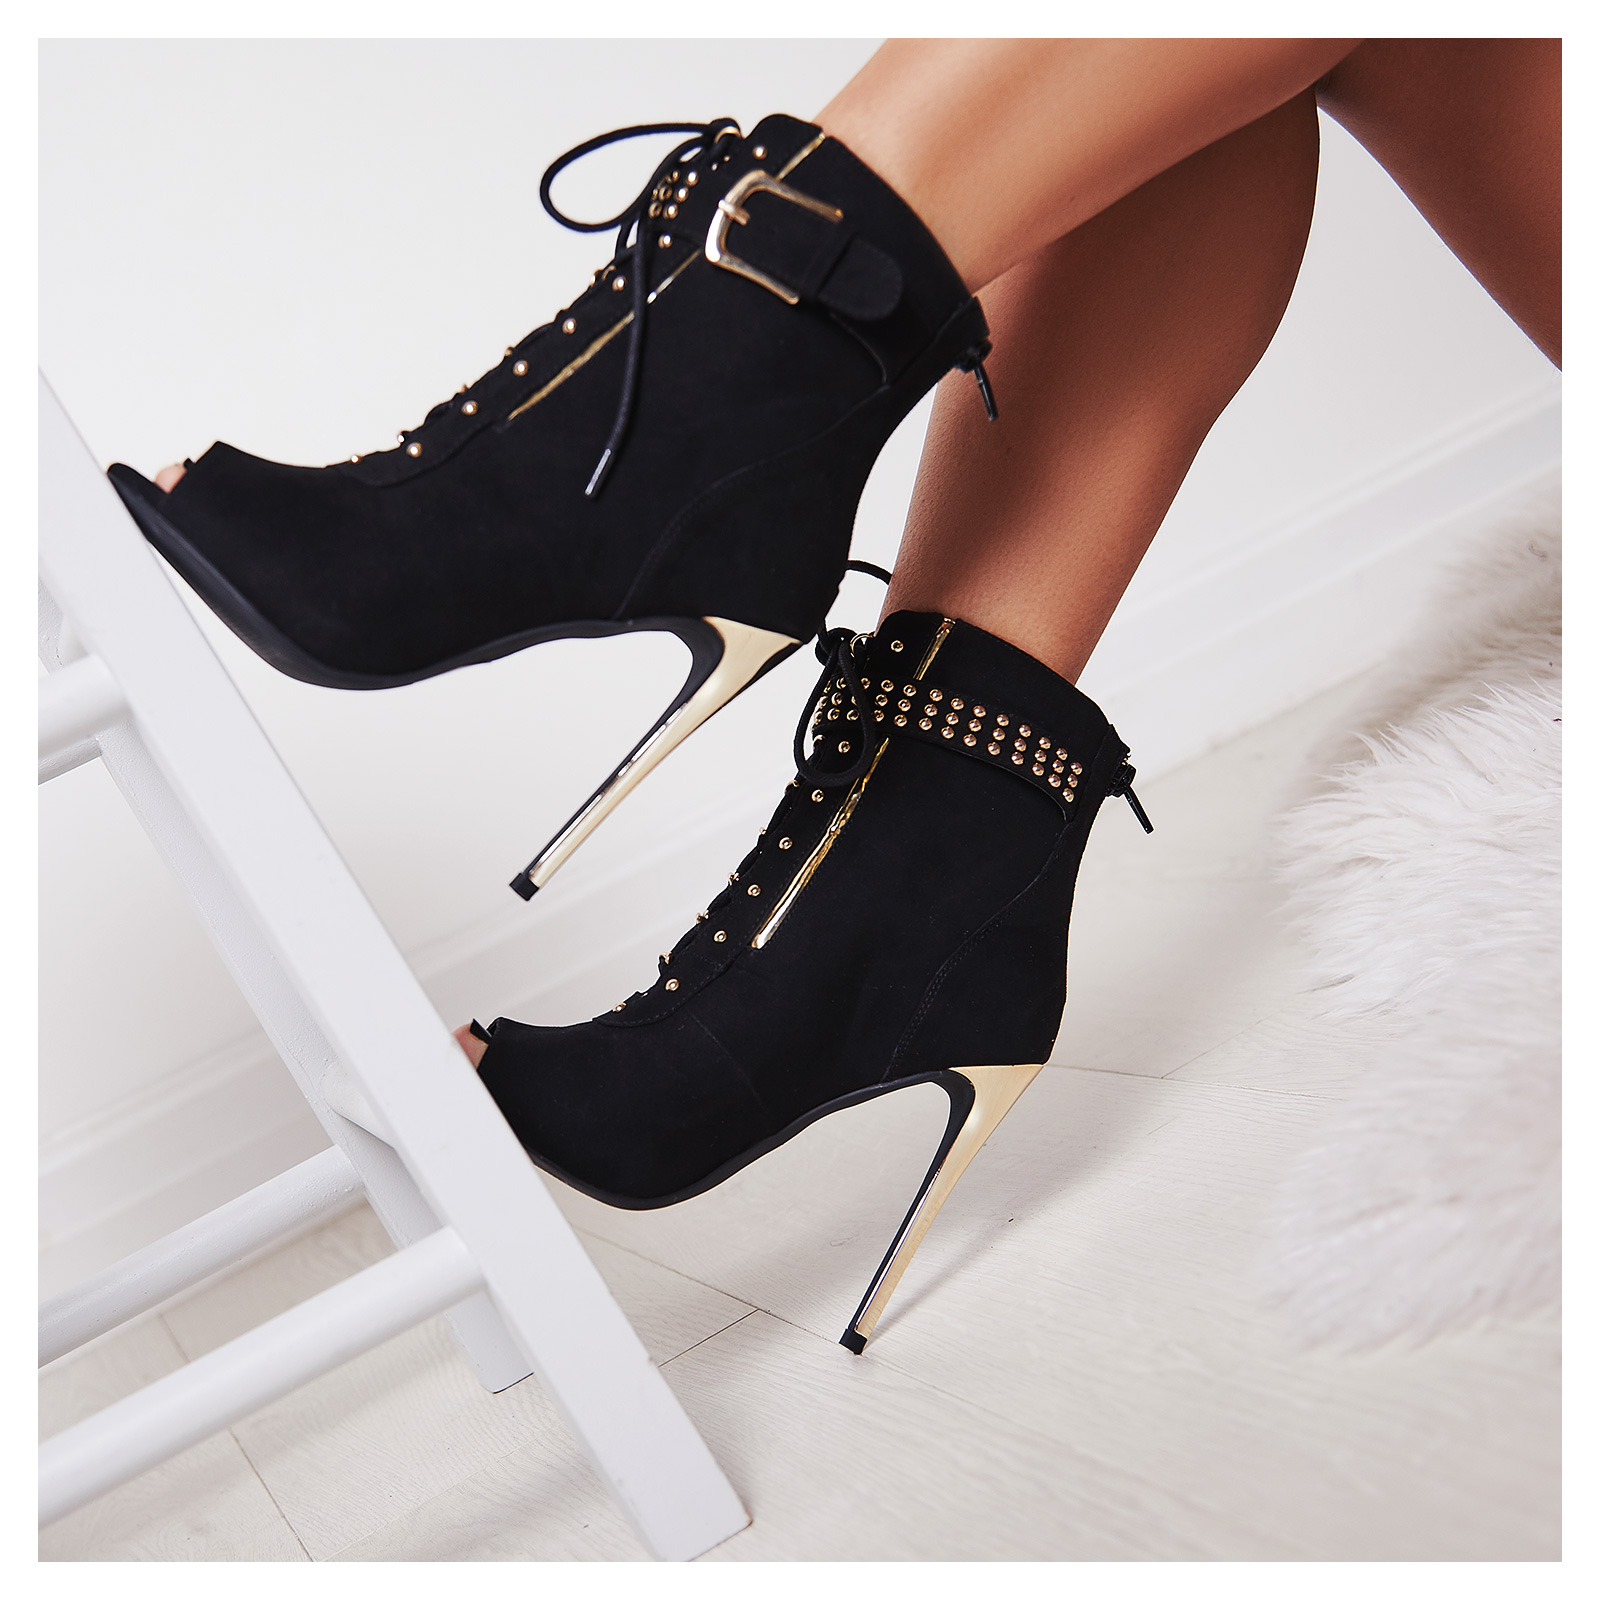 Zanna Peep Toe Lace Up Boot